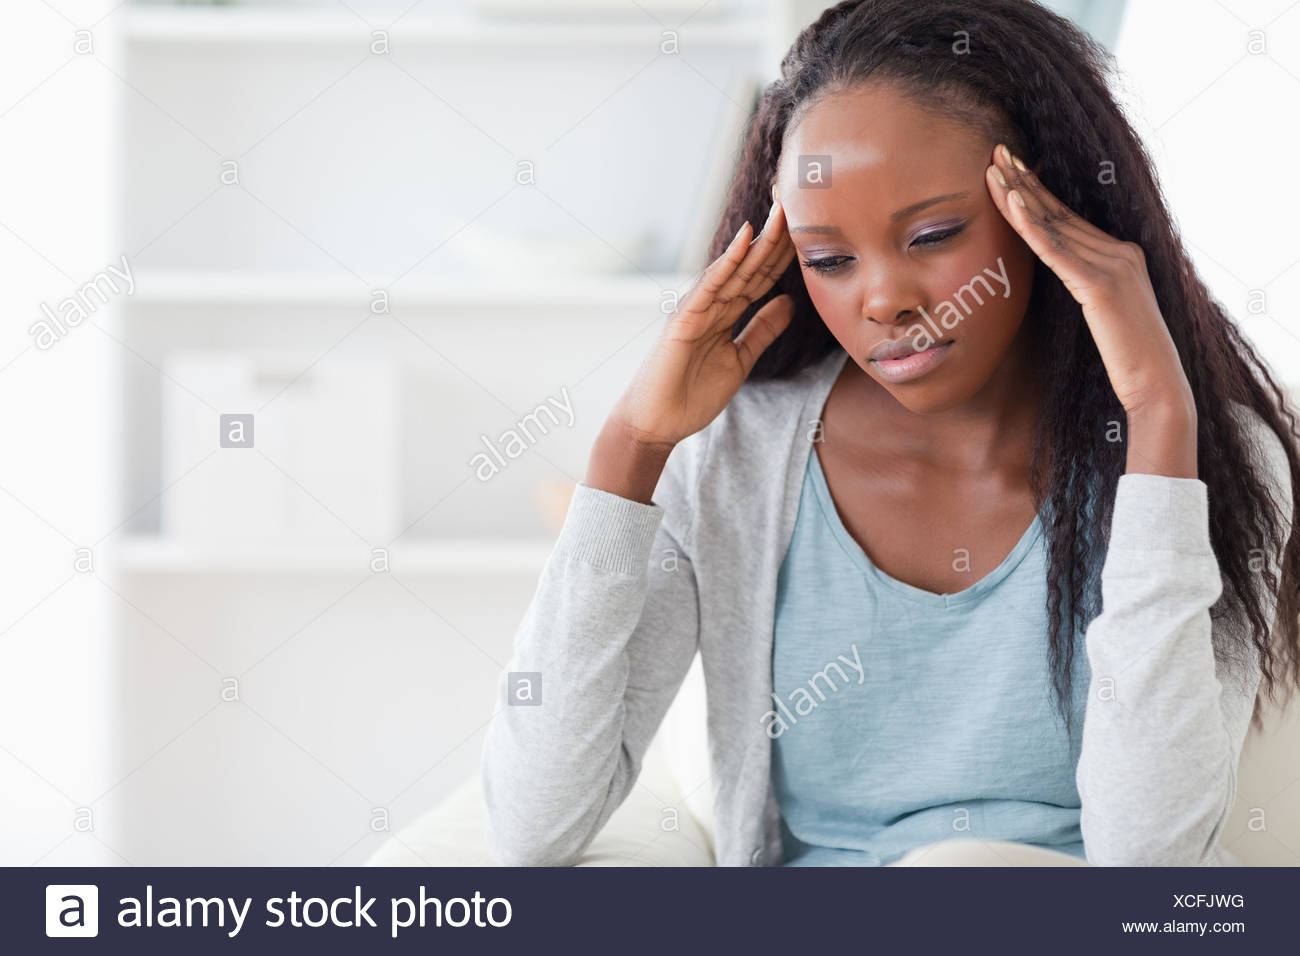 Woman experiencing a headache - Stock Image